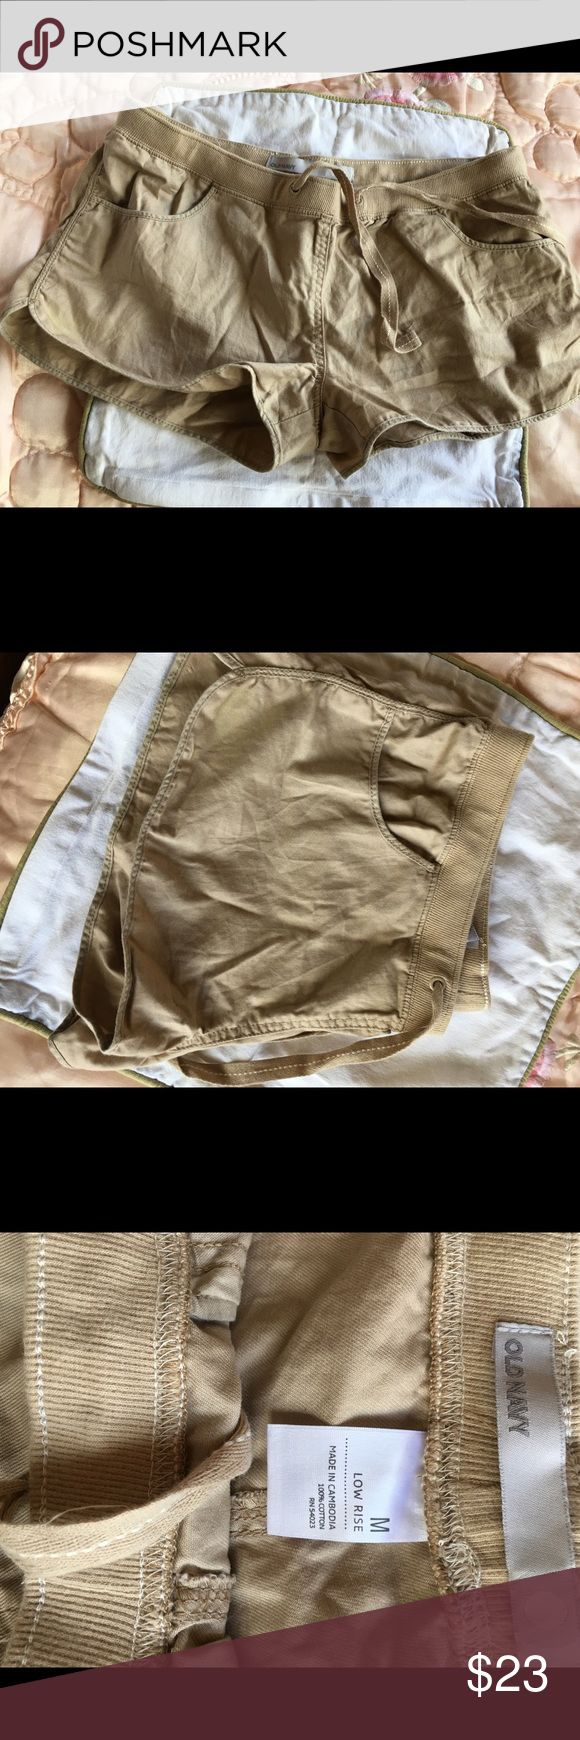 Old Navy Low Rise Woman Shorts Size 12 Old Navy Female Low Rise  Khaki Shorts. This is brand New without tags, never worn. No damages and no missing parts. Thanks for visiting. Old Navy Shorts